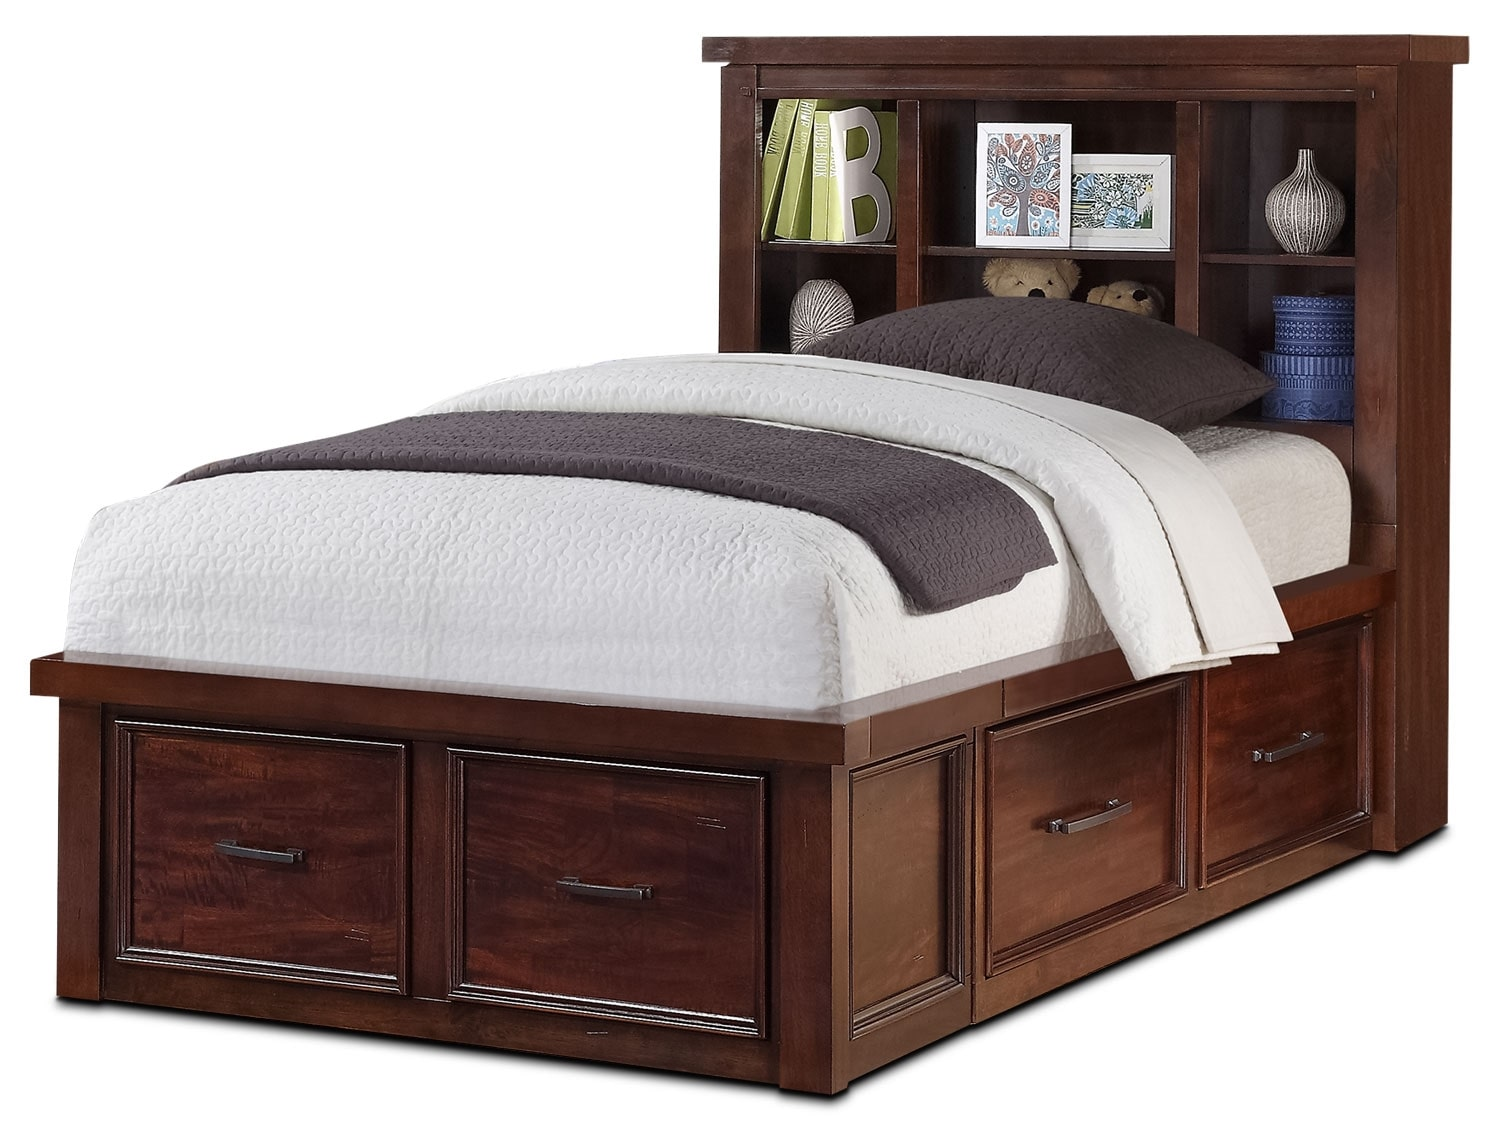 Sonoma youth twin bookcase storage bed united furniture for Furniture and beds